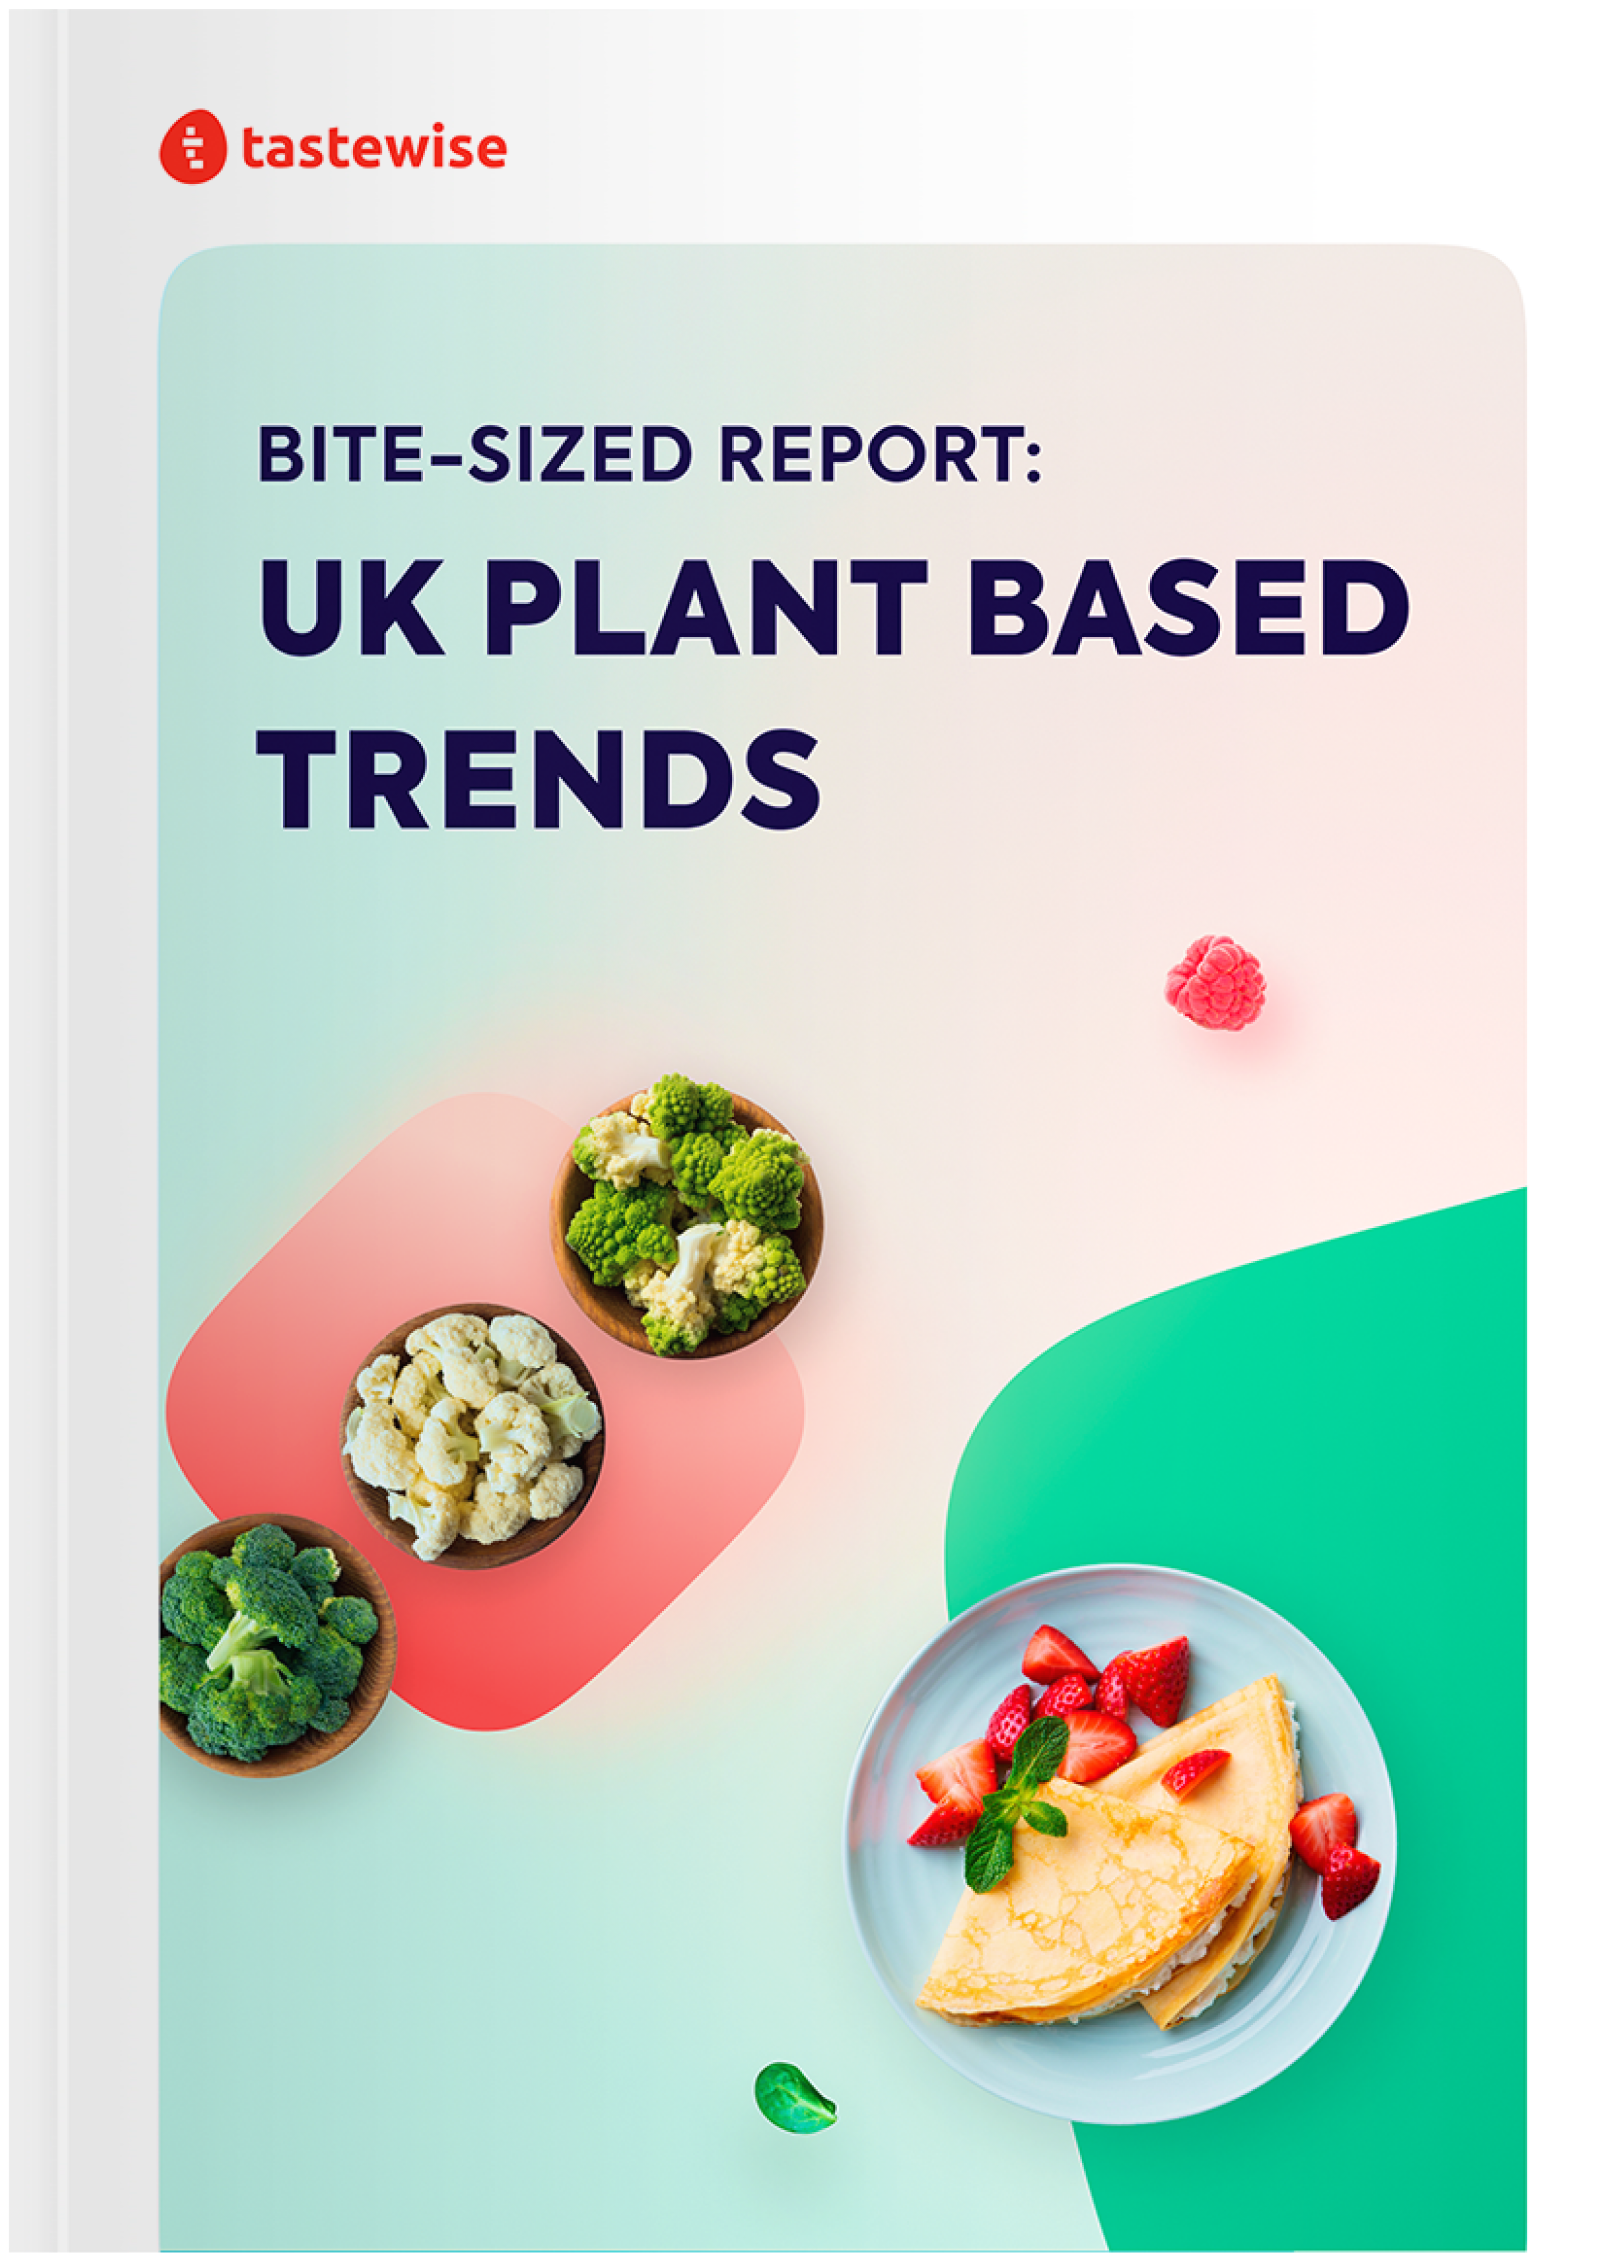 Download the Bite-sized Report